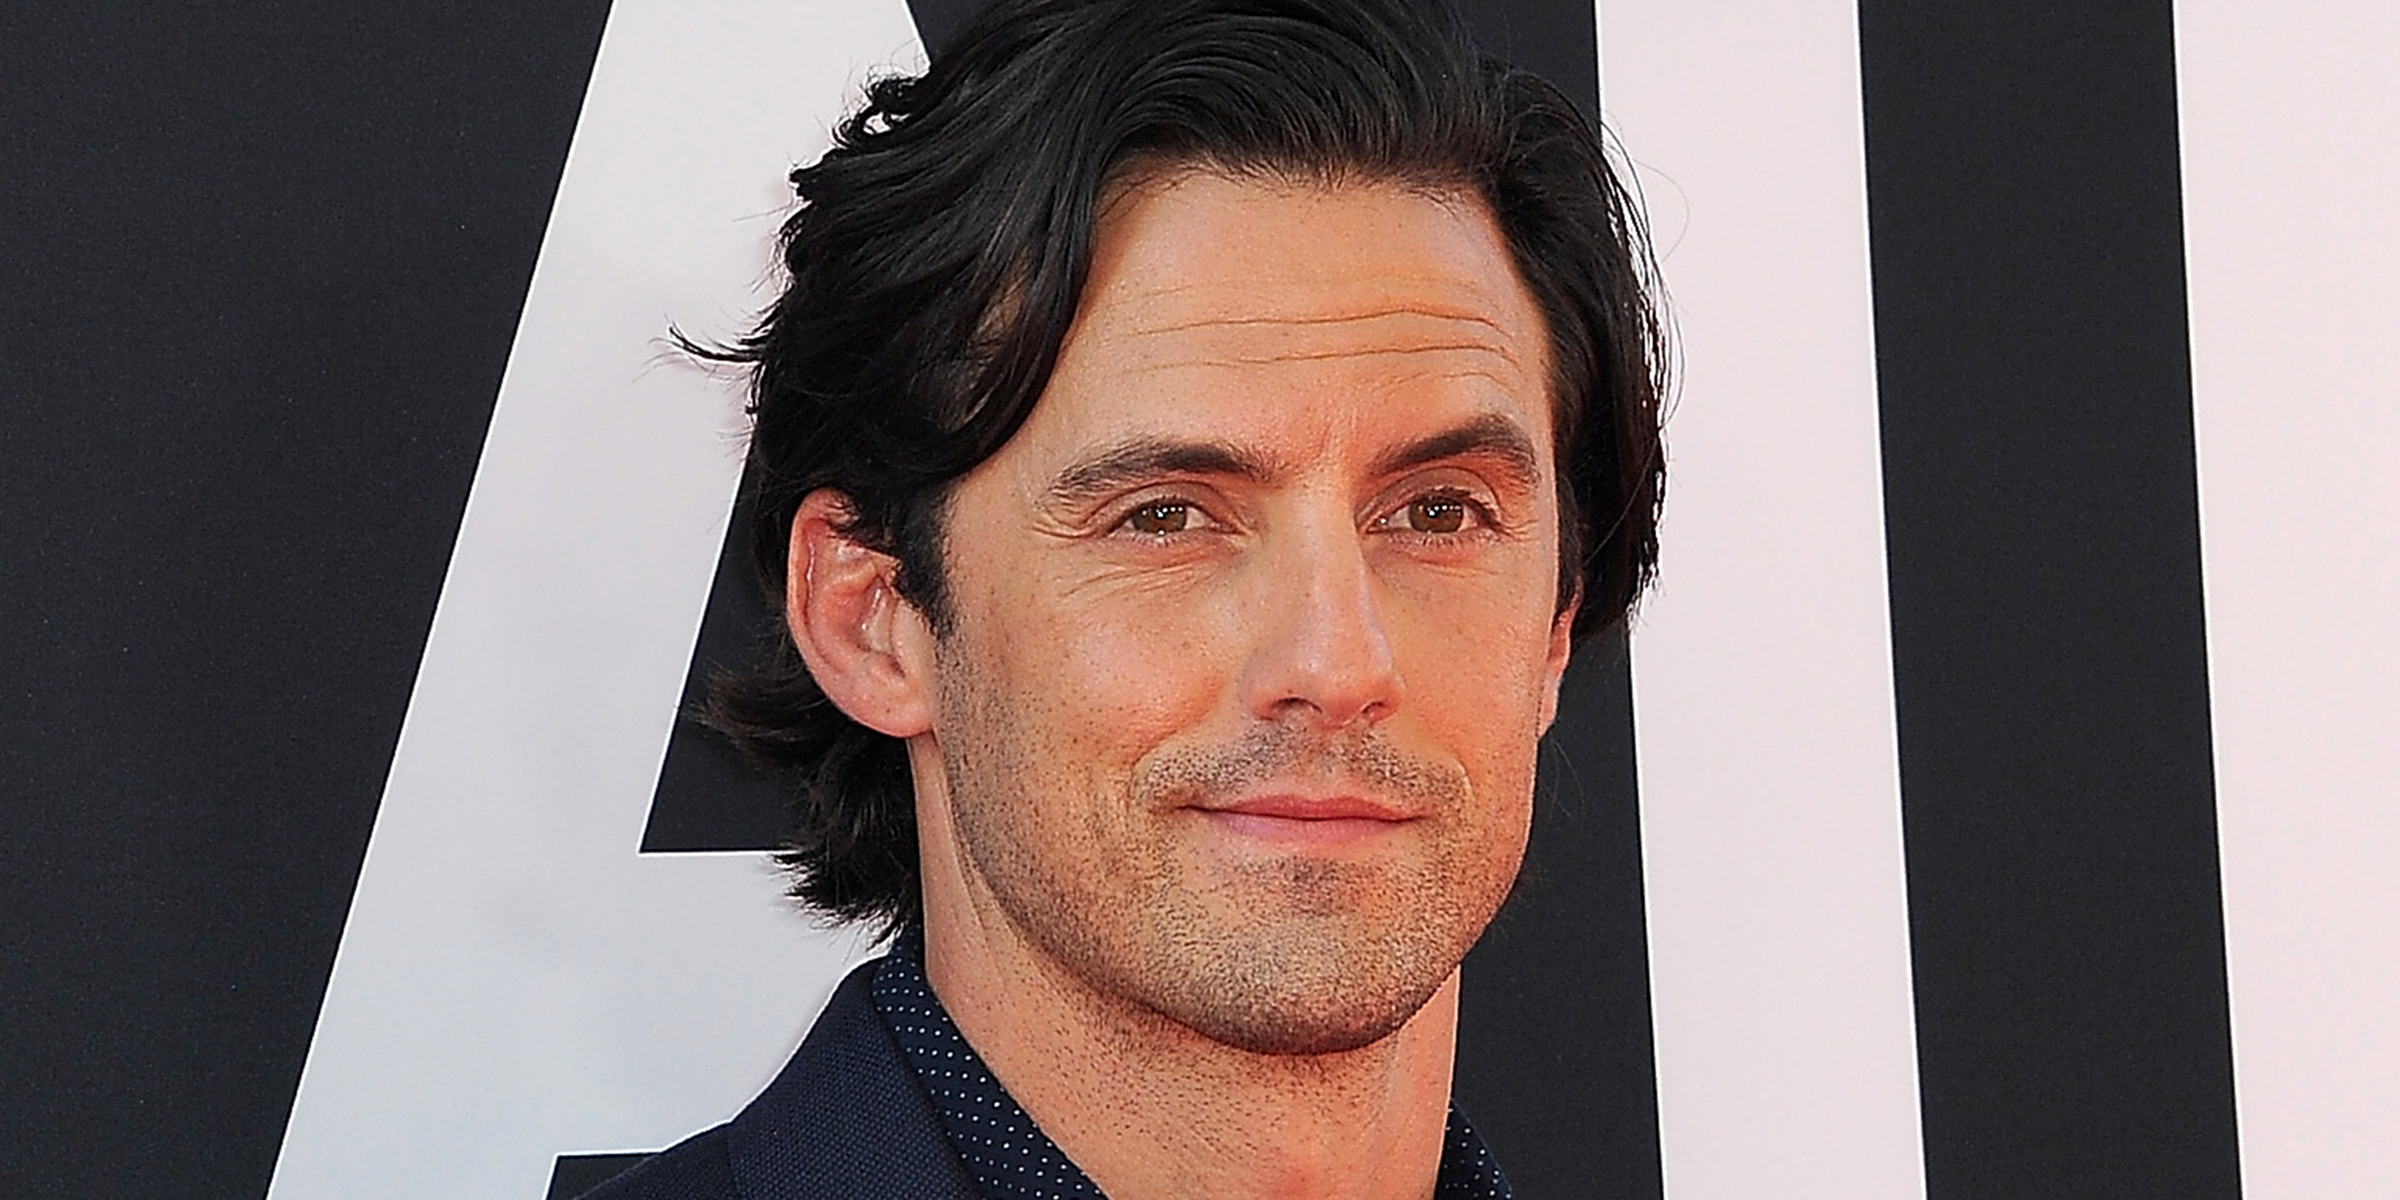 Milo Ventimiglia reveals he was told he was too old to play Batman